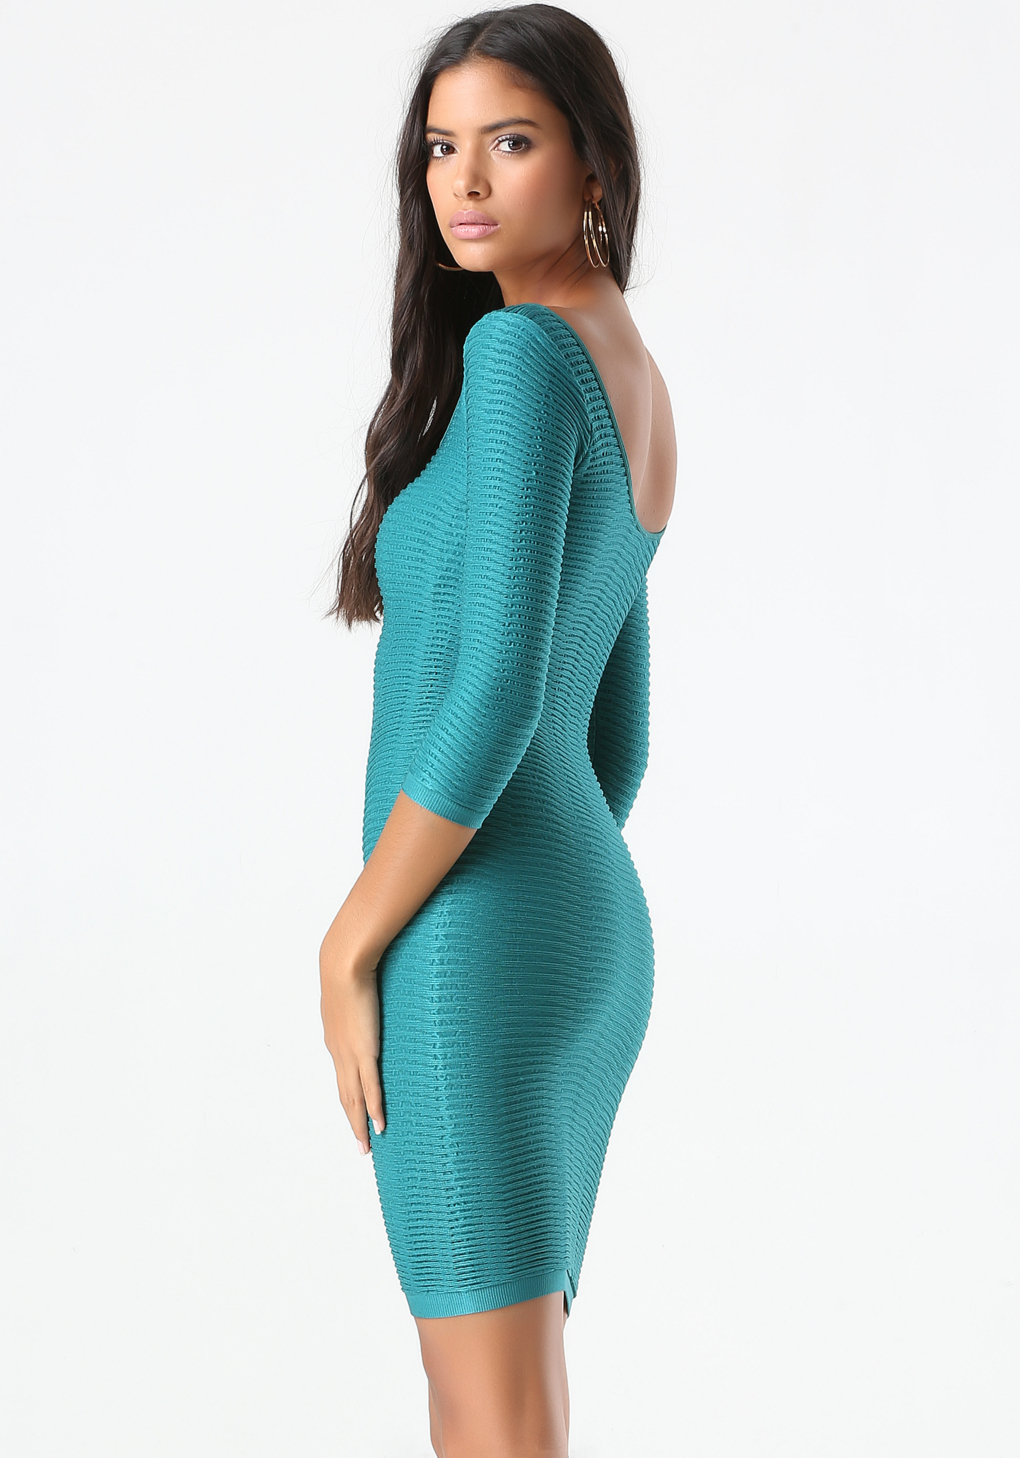 Lyst - Bebe Textured Bodycon Dress in Blue